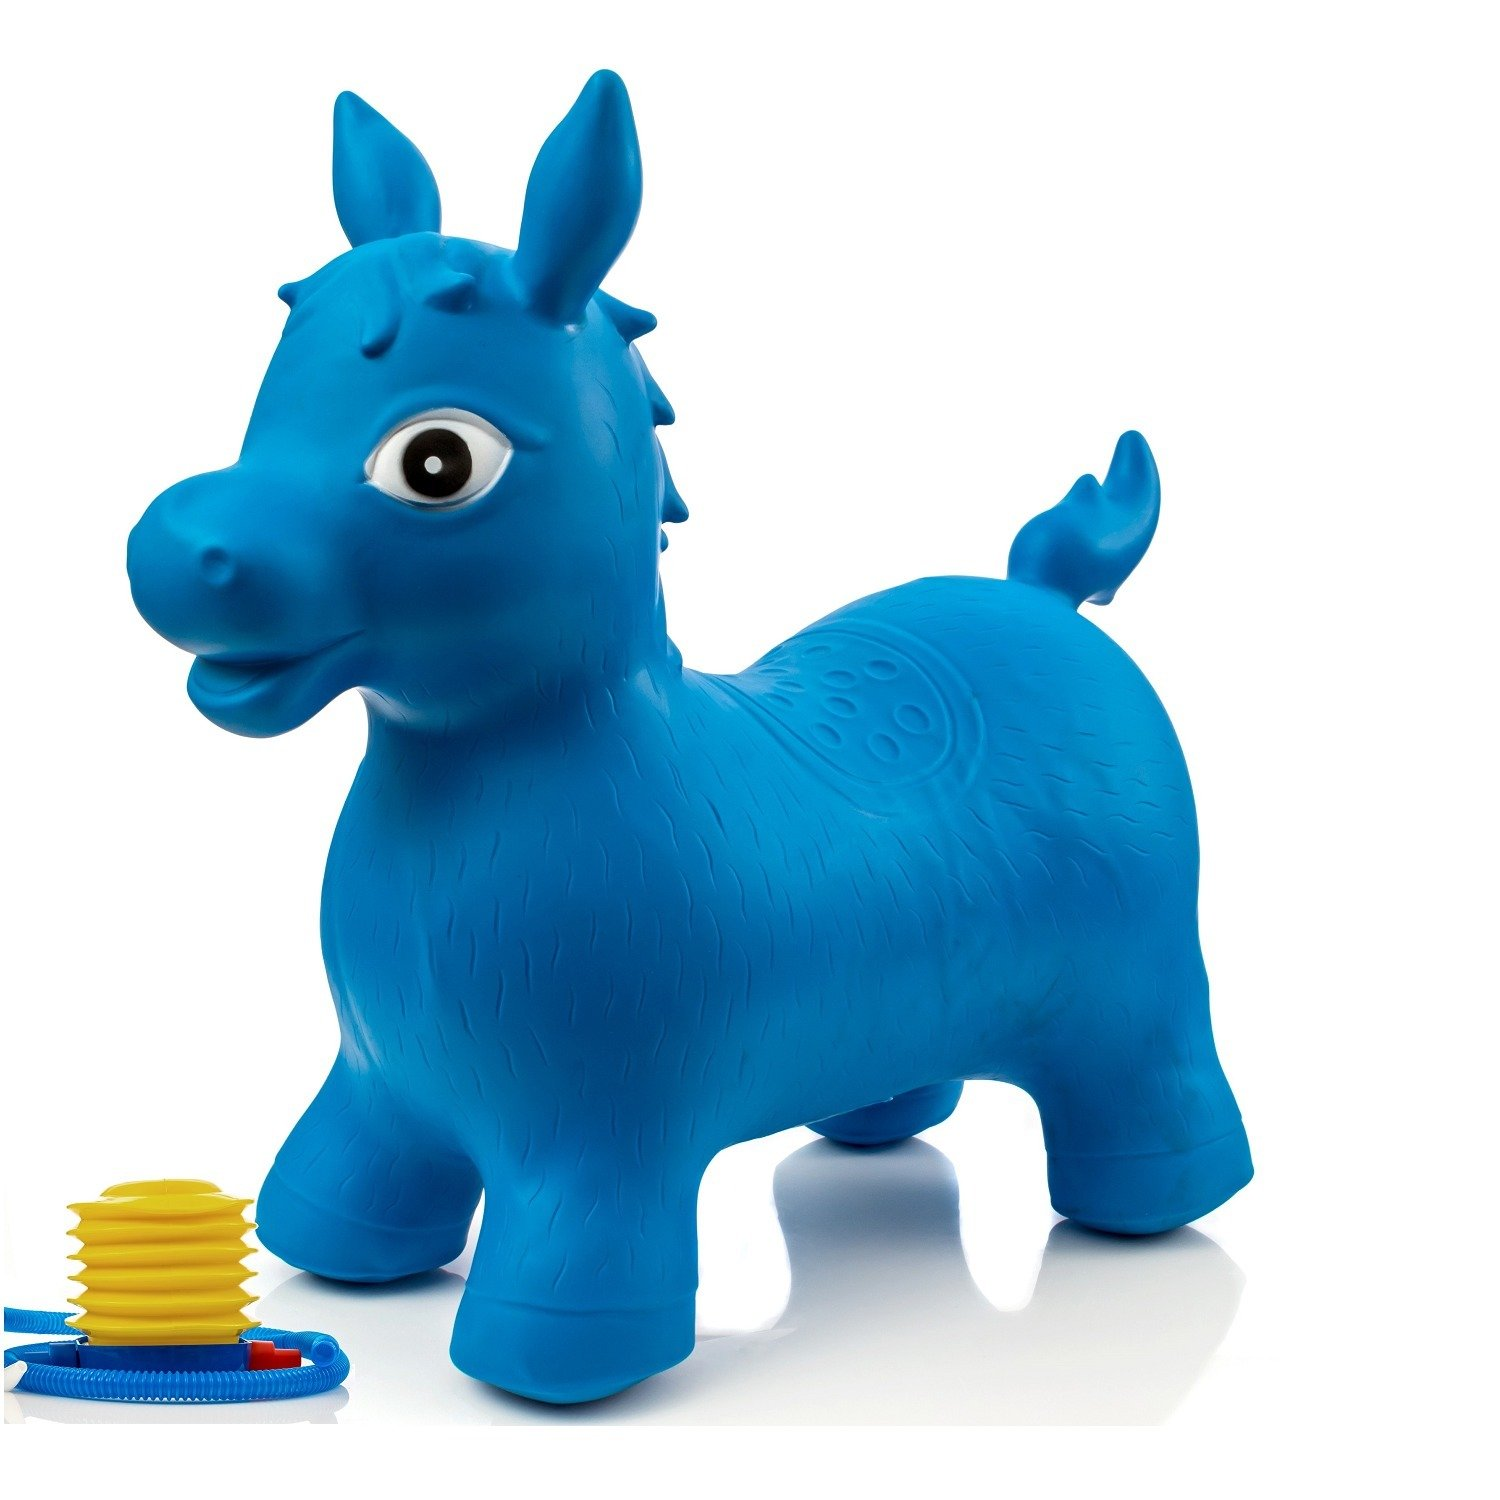 Amazon.com : Childrens Horse Hopper, with Free Foot Pump, Exercise Jumping Animal, Bouncy Horsey for Children, Fun Space Hopper for Core Strengthening ...